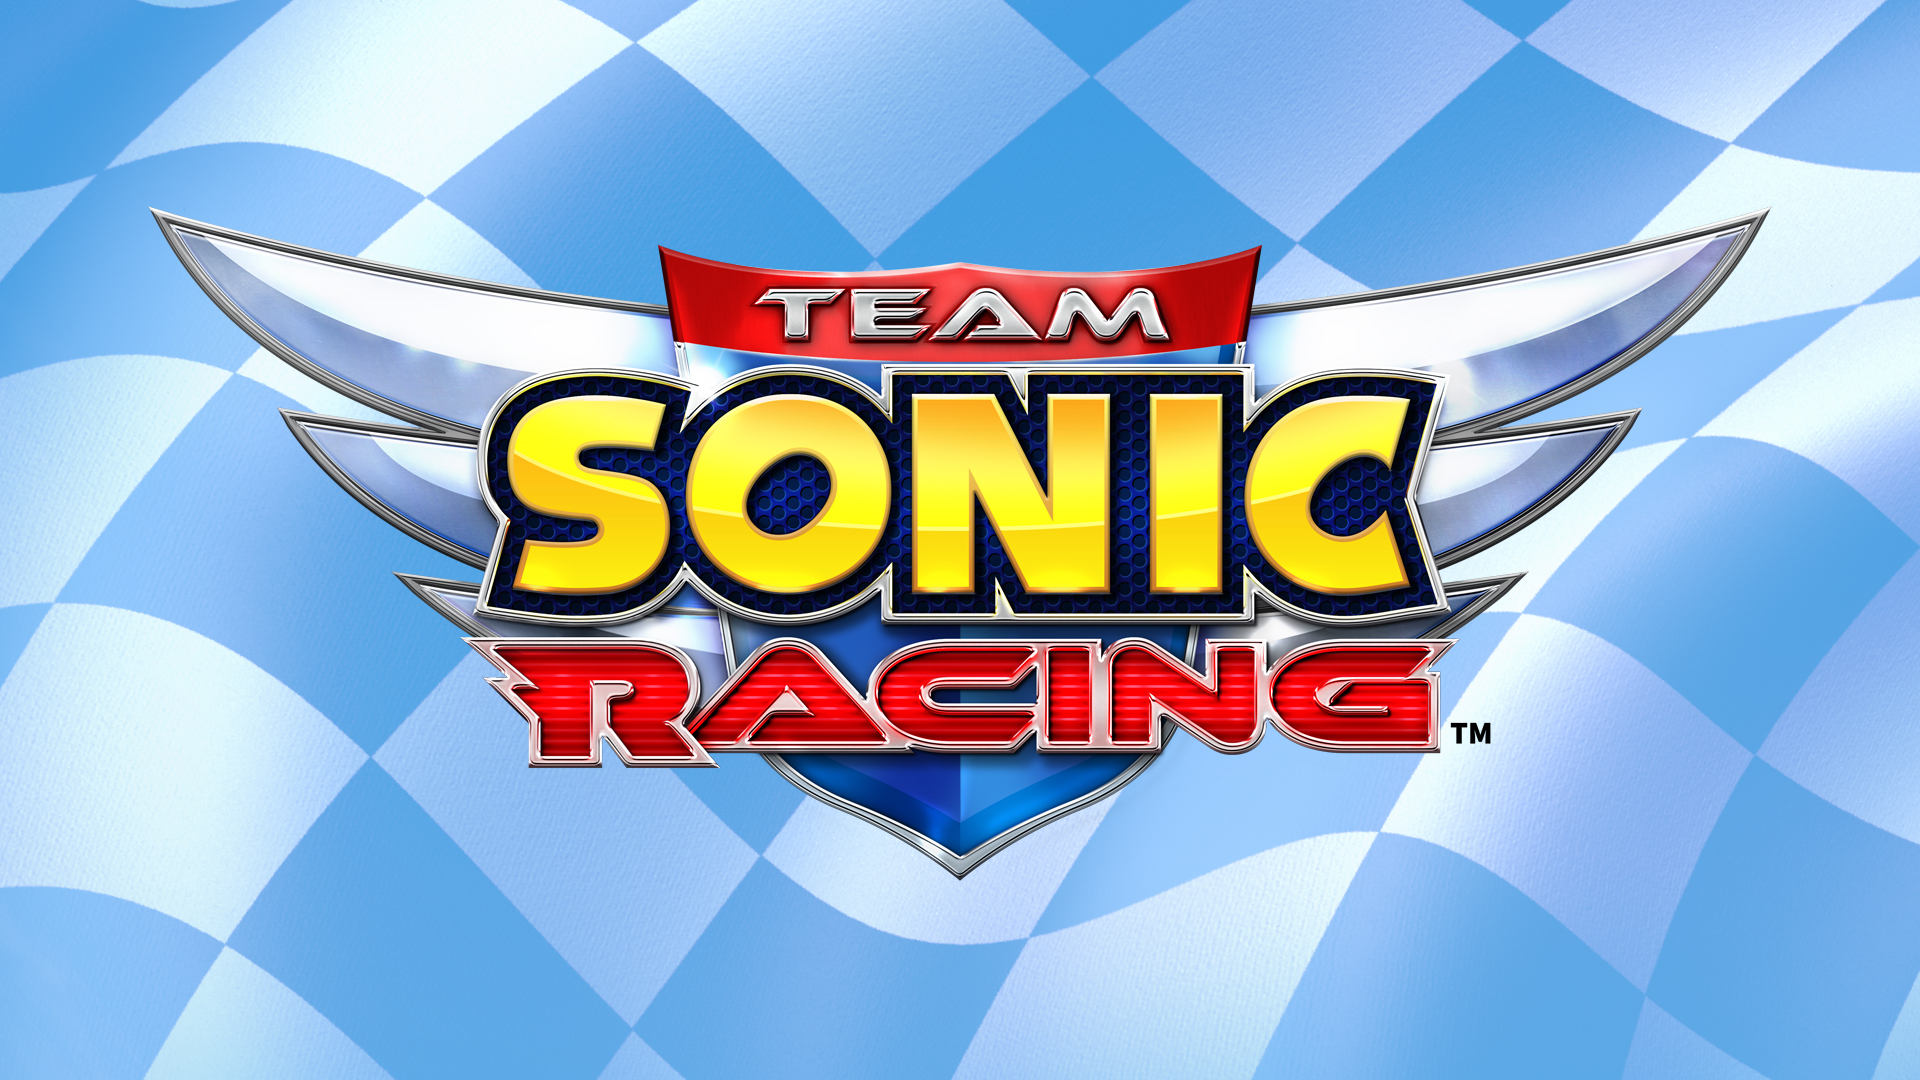 Team Sonic Racing burns rubber to Switch, PS4, XB1 & PC Header Image